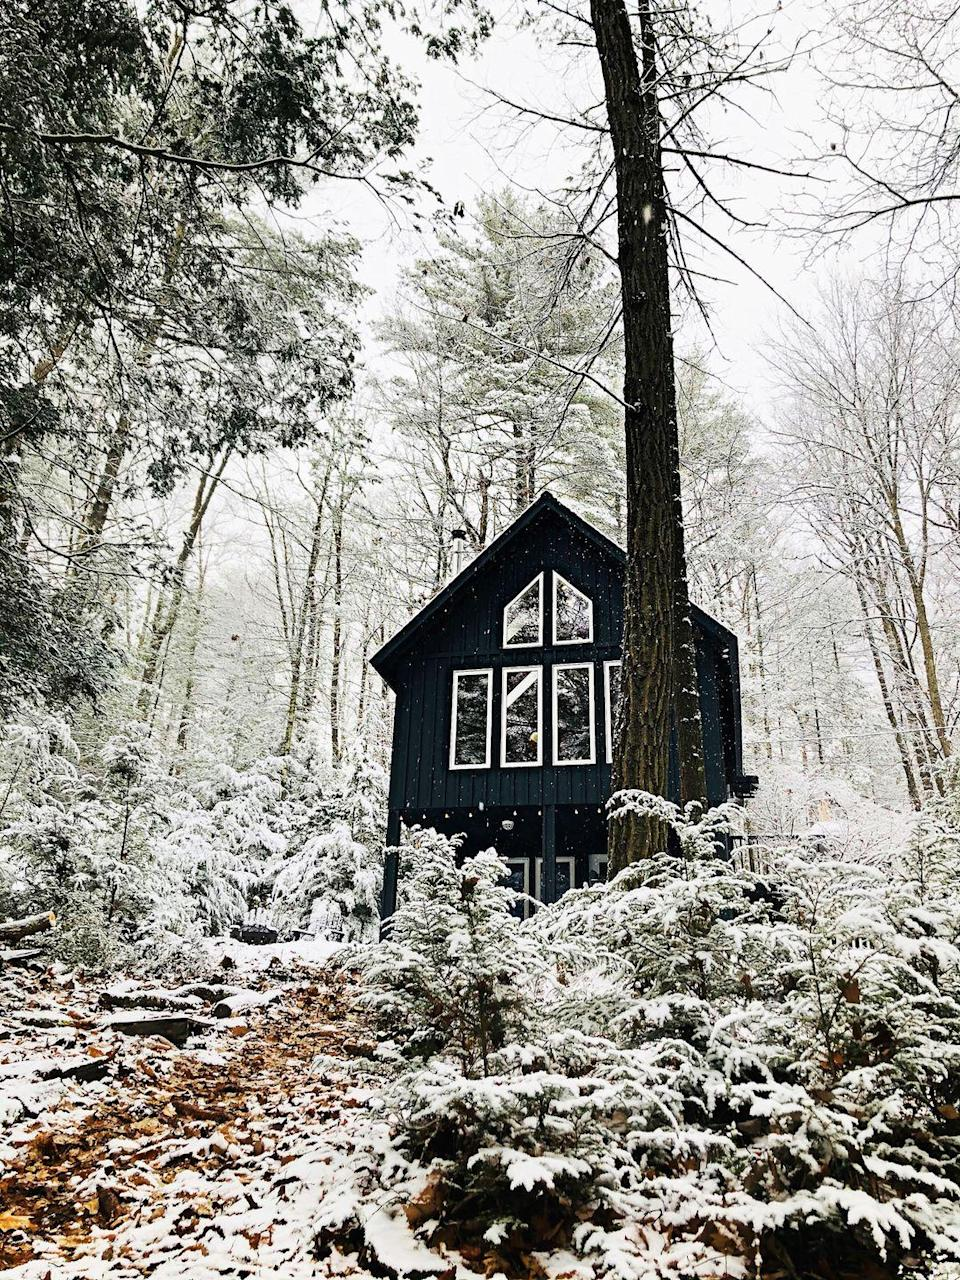 "<p>Like something out of a fairytale, this dreamy A-frame home is tucked away in the woods alongside the Delaware River. It looks magical. </p><p><a class=""link rapid-noclick-resp"" href=""https://go.redirectingat.com?id=127X1599956&url=https%3A%2F%2Fwww.airbnb.co.uk%2Frooms%2F44148568&sref=https%3A%2F%2Fwww.redonline.co.uk%2Ftravel%2Finspiration%2Fg35466875%2Fairbnb-most-liked-homes%2F"" rel=""nofollow noopener"" target=""_blank"" data-ylk=""slk:MORE INFO"">MORE INFO</a></p>"